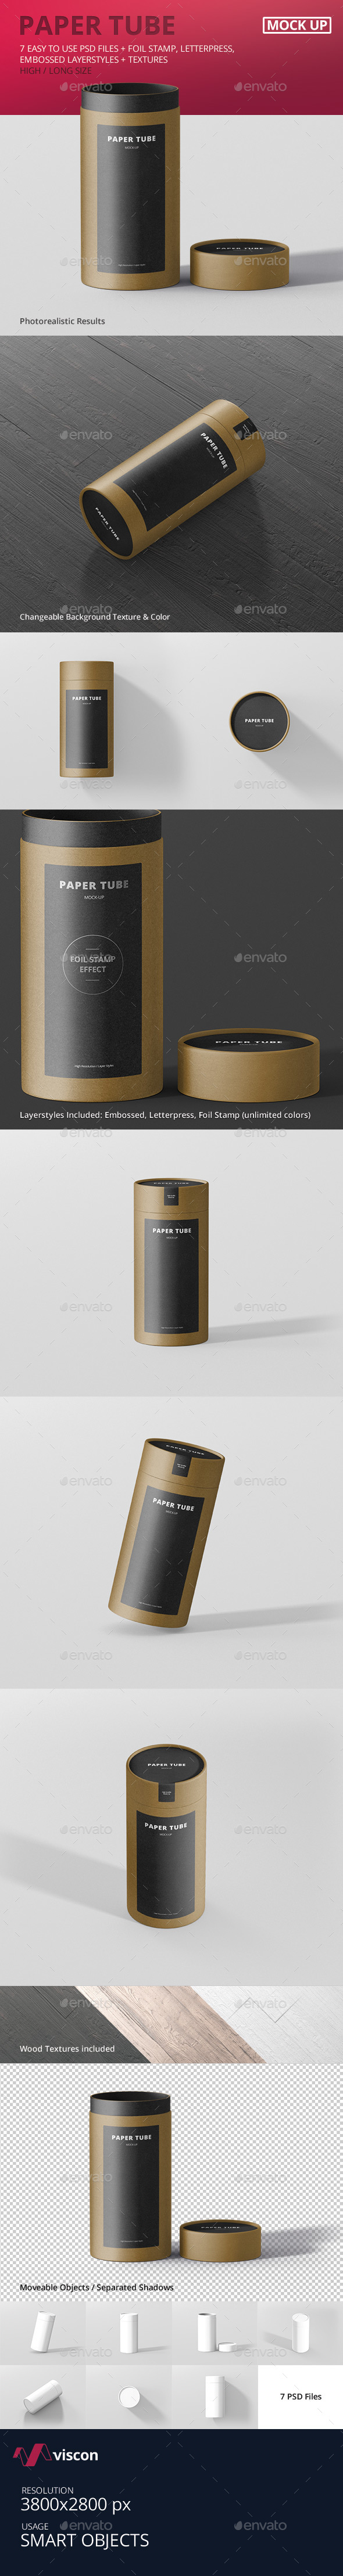 Paper Tube Packaging Mock-Up - Long / High